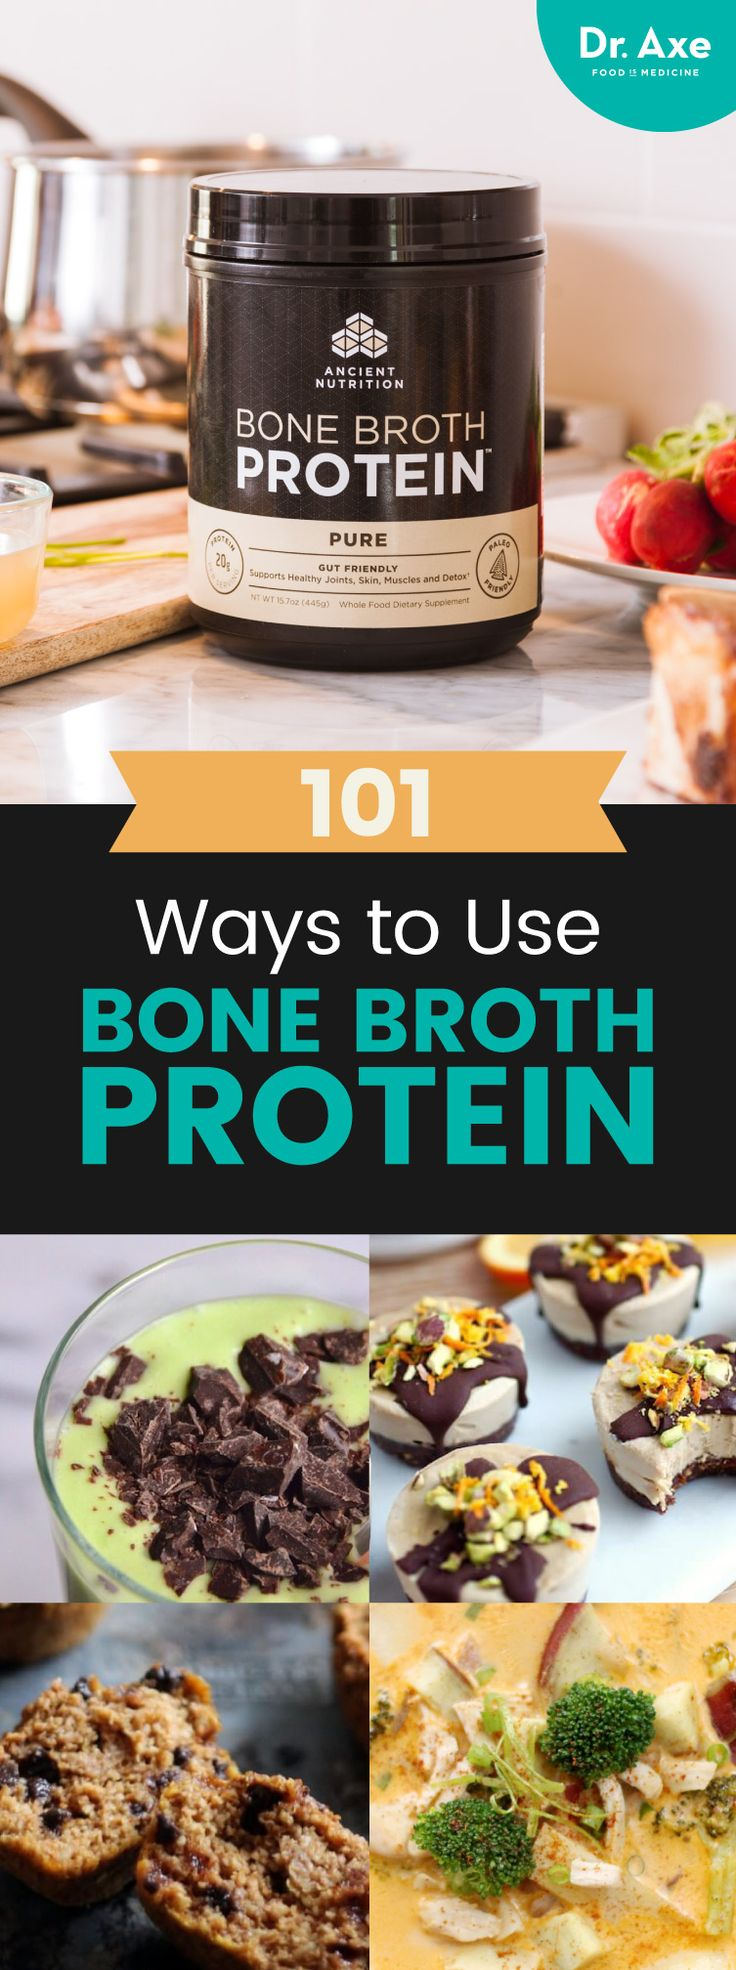 But your Bone Broth Protein to good use!